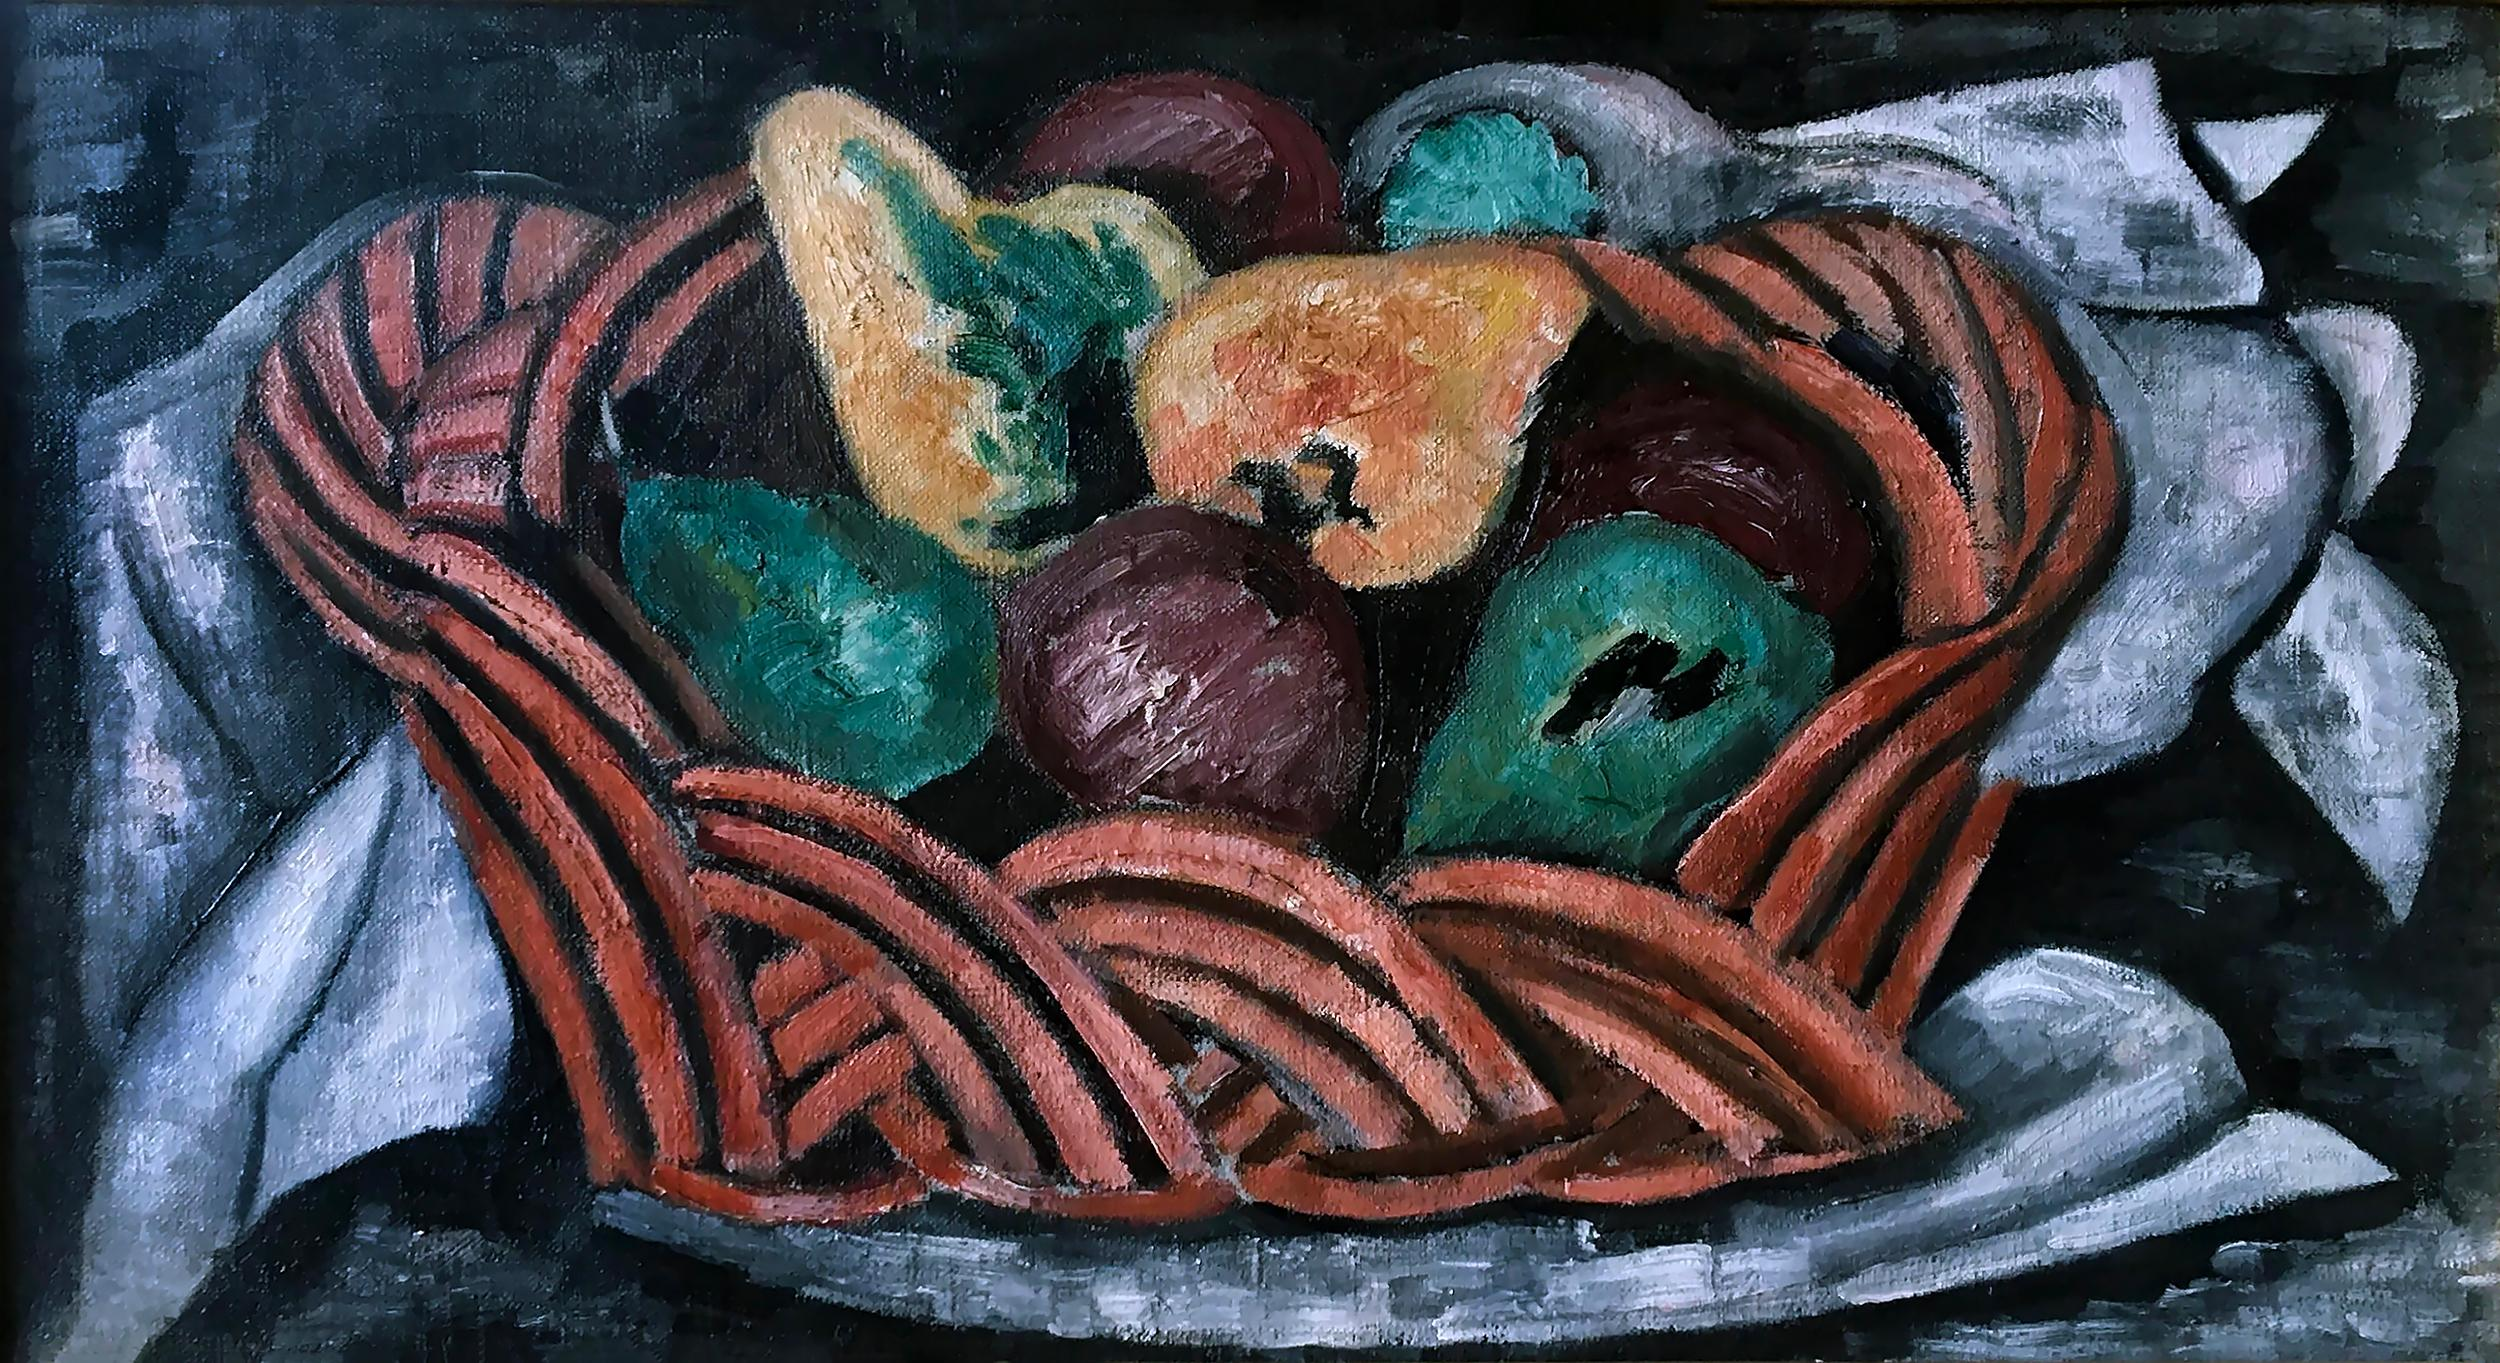 Basket with Fruit